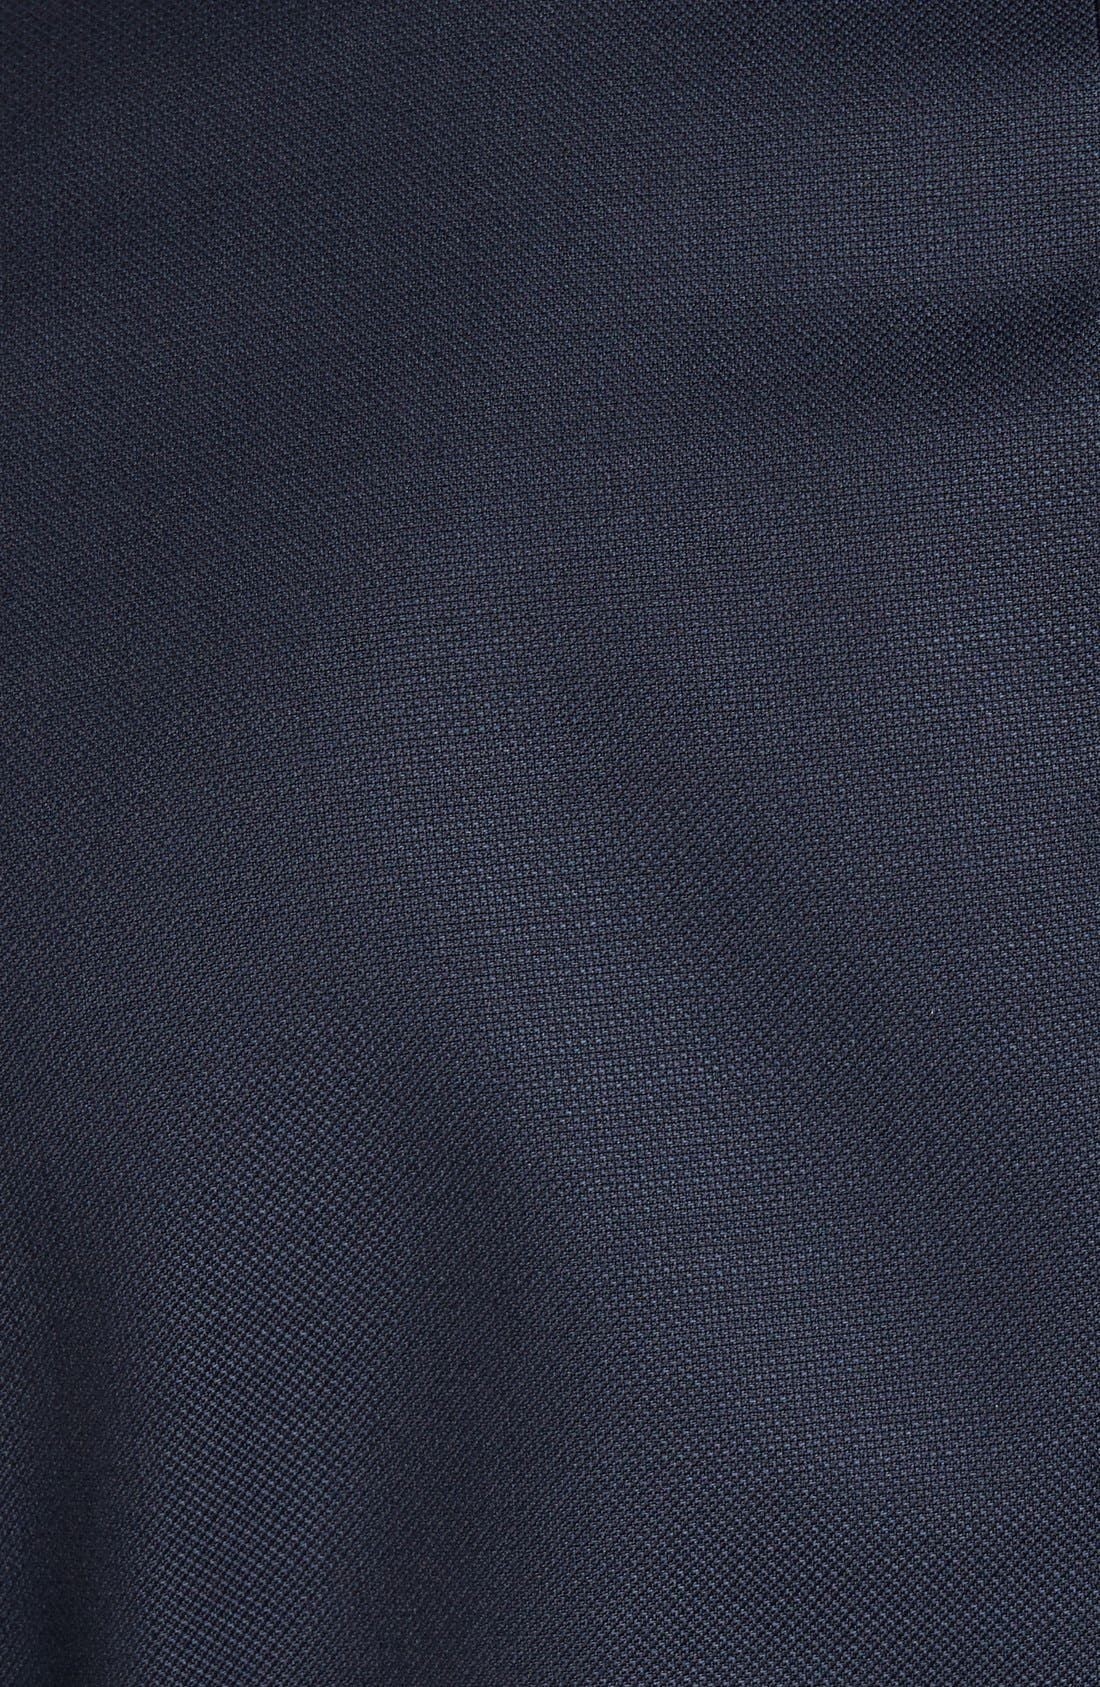 James Classic Fit Wool Blazer,                             Alternate thumbnail 5, color,                             Navy